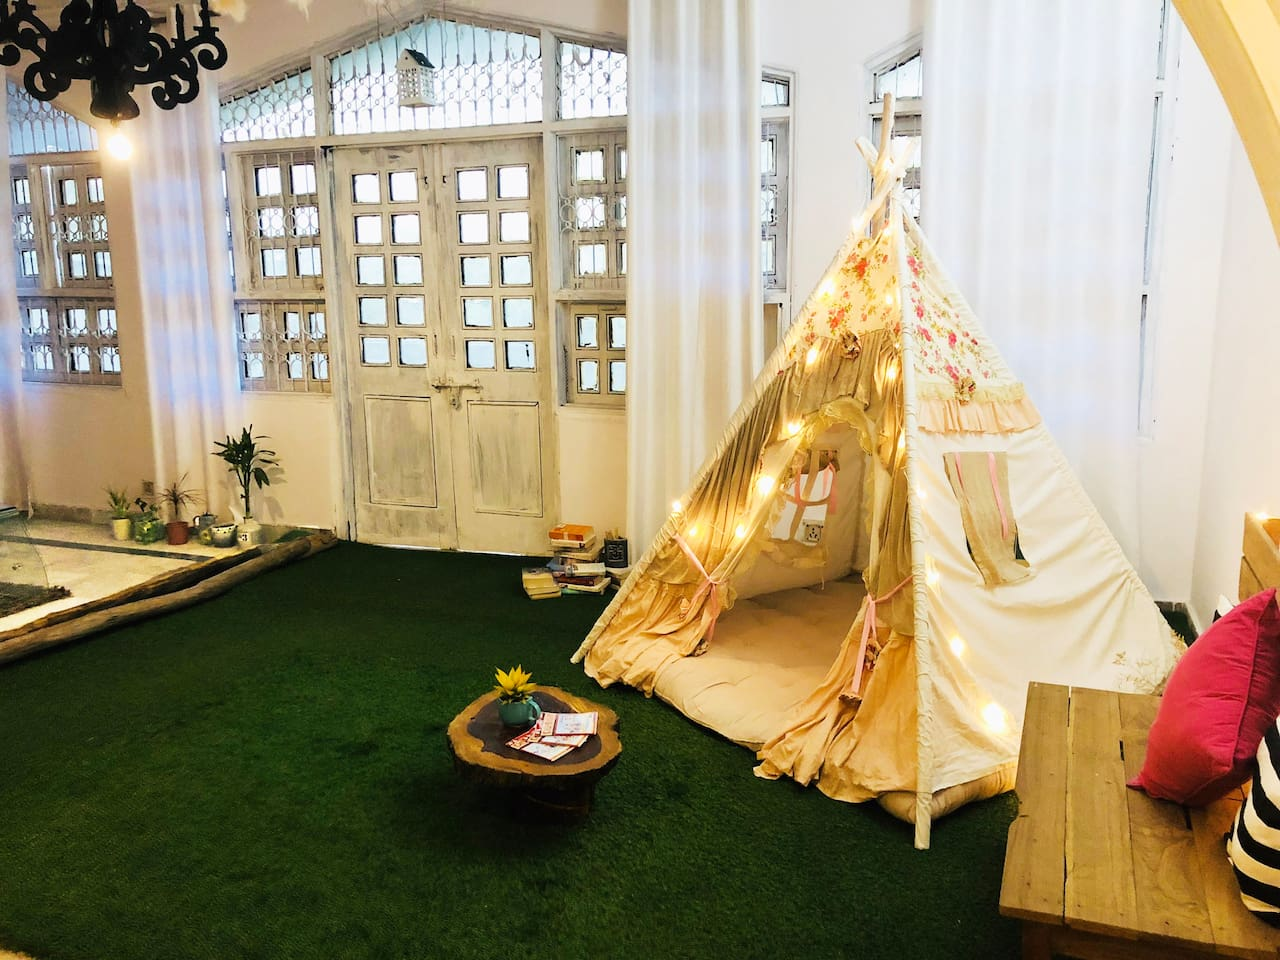 Living Area with a Teepee Tent